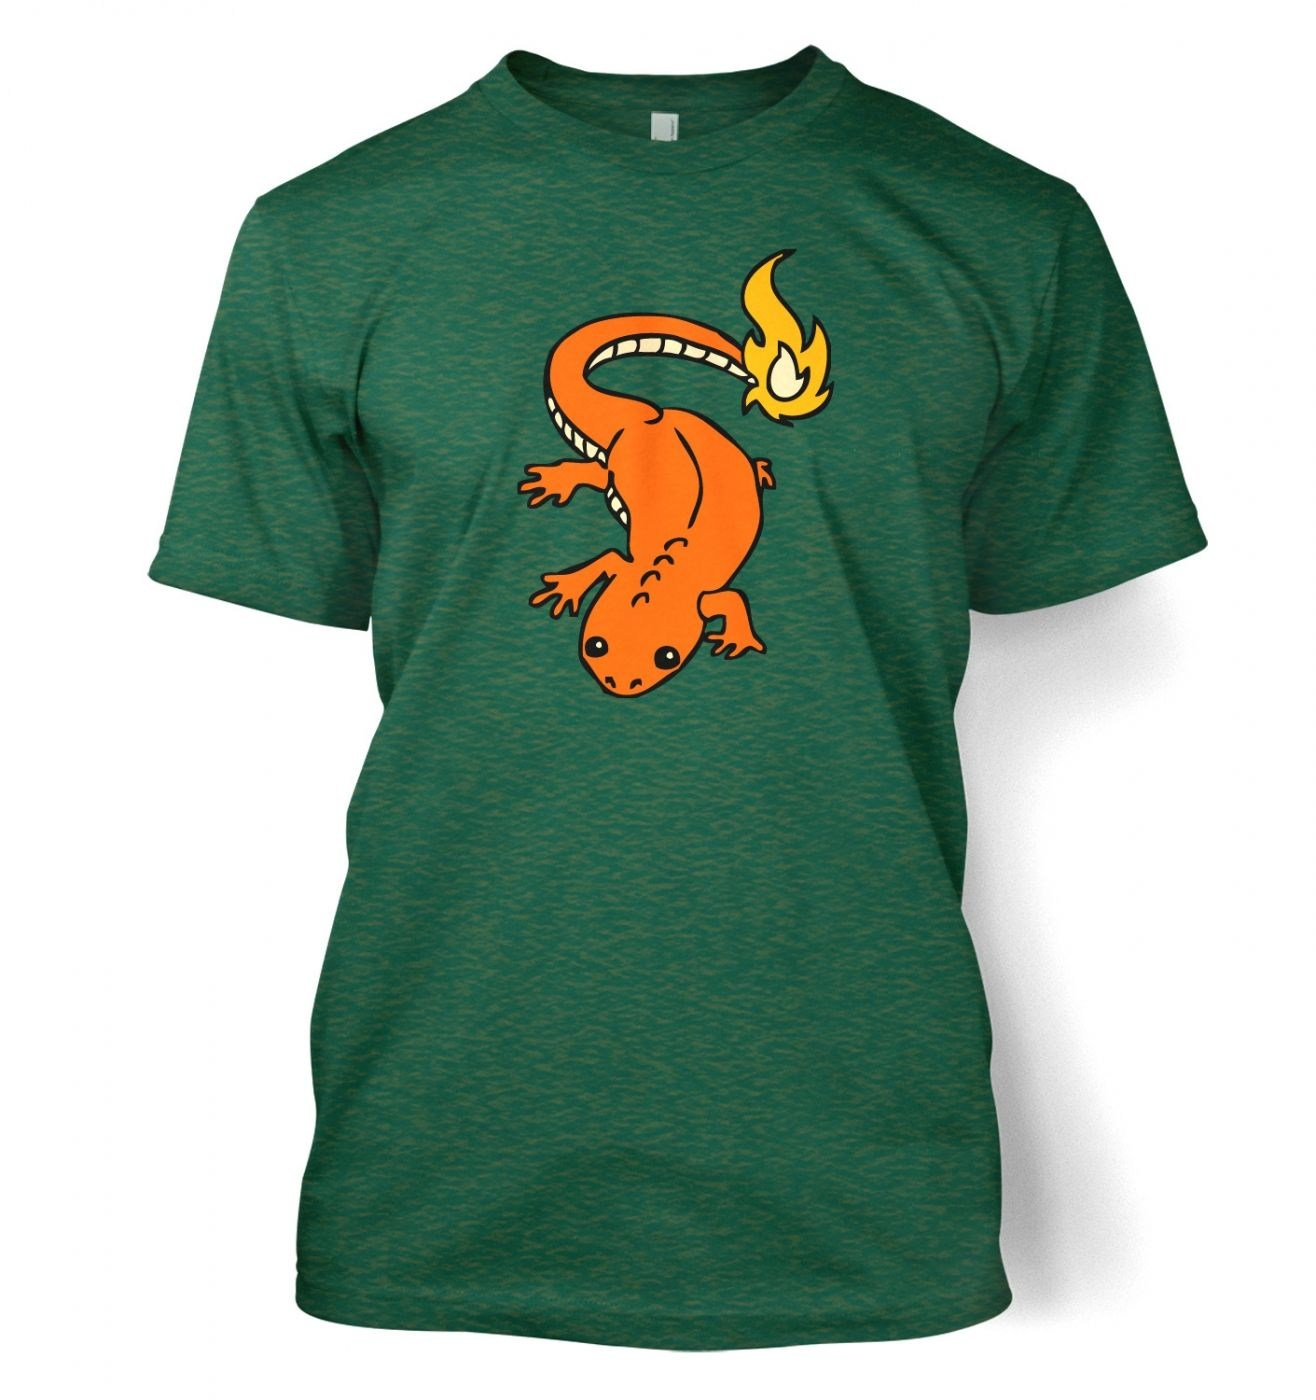 Real Life Charmander T-Shirt - Inspired by Pokemon